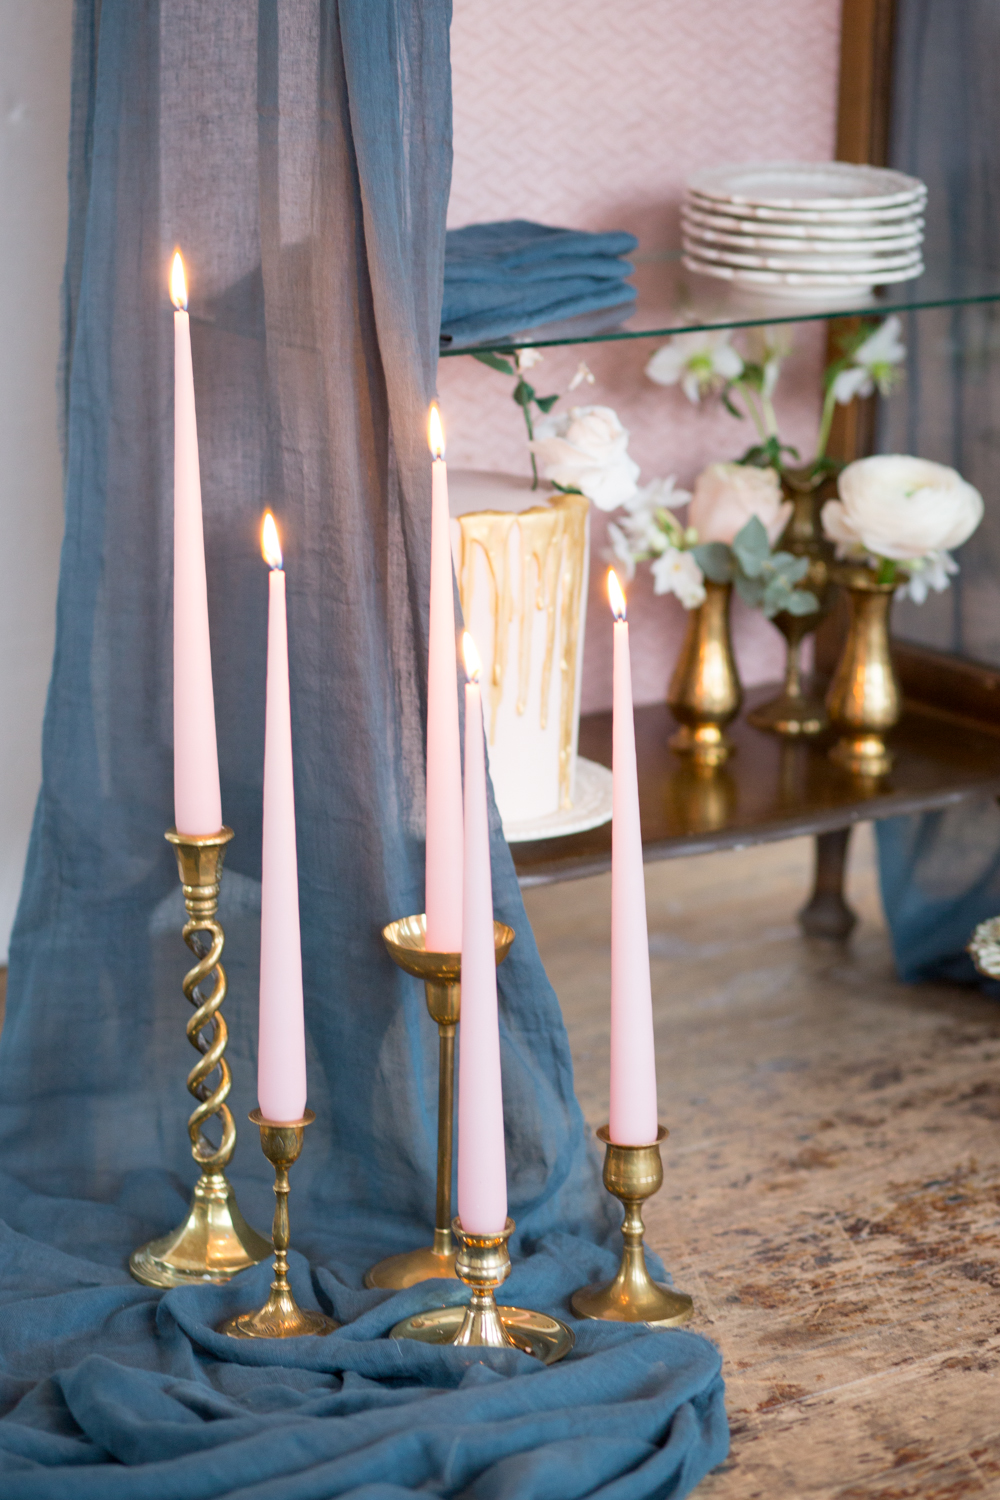 The Timeless Stylist - Brass Candlesticks to Hire